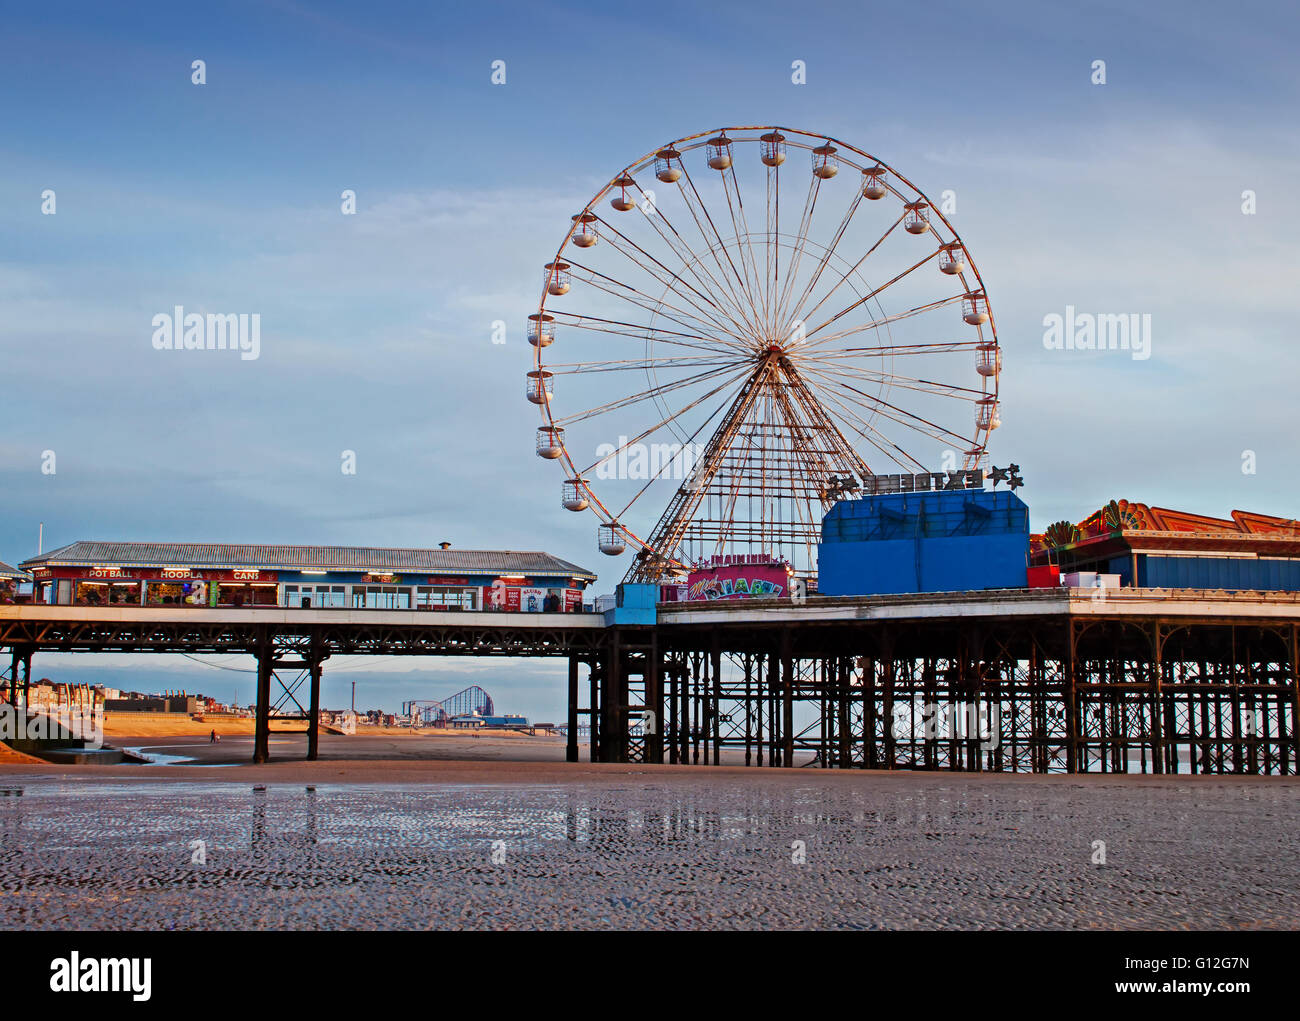 The big wheel on Blackpool's Central Pier - Stock Image